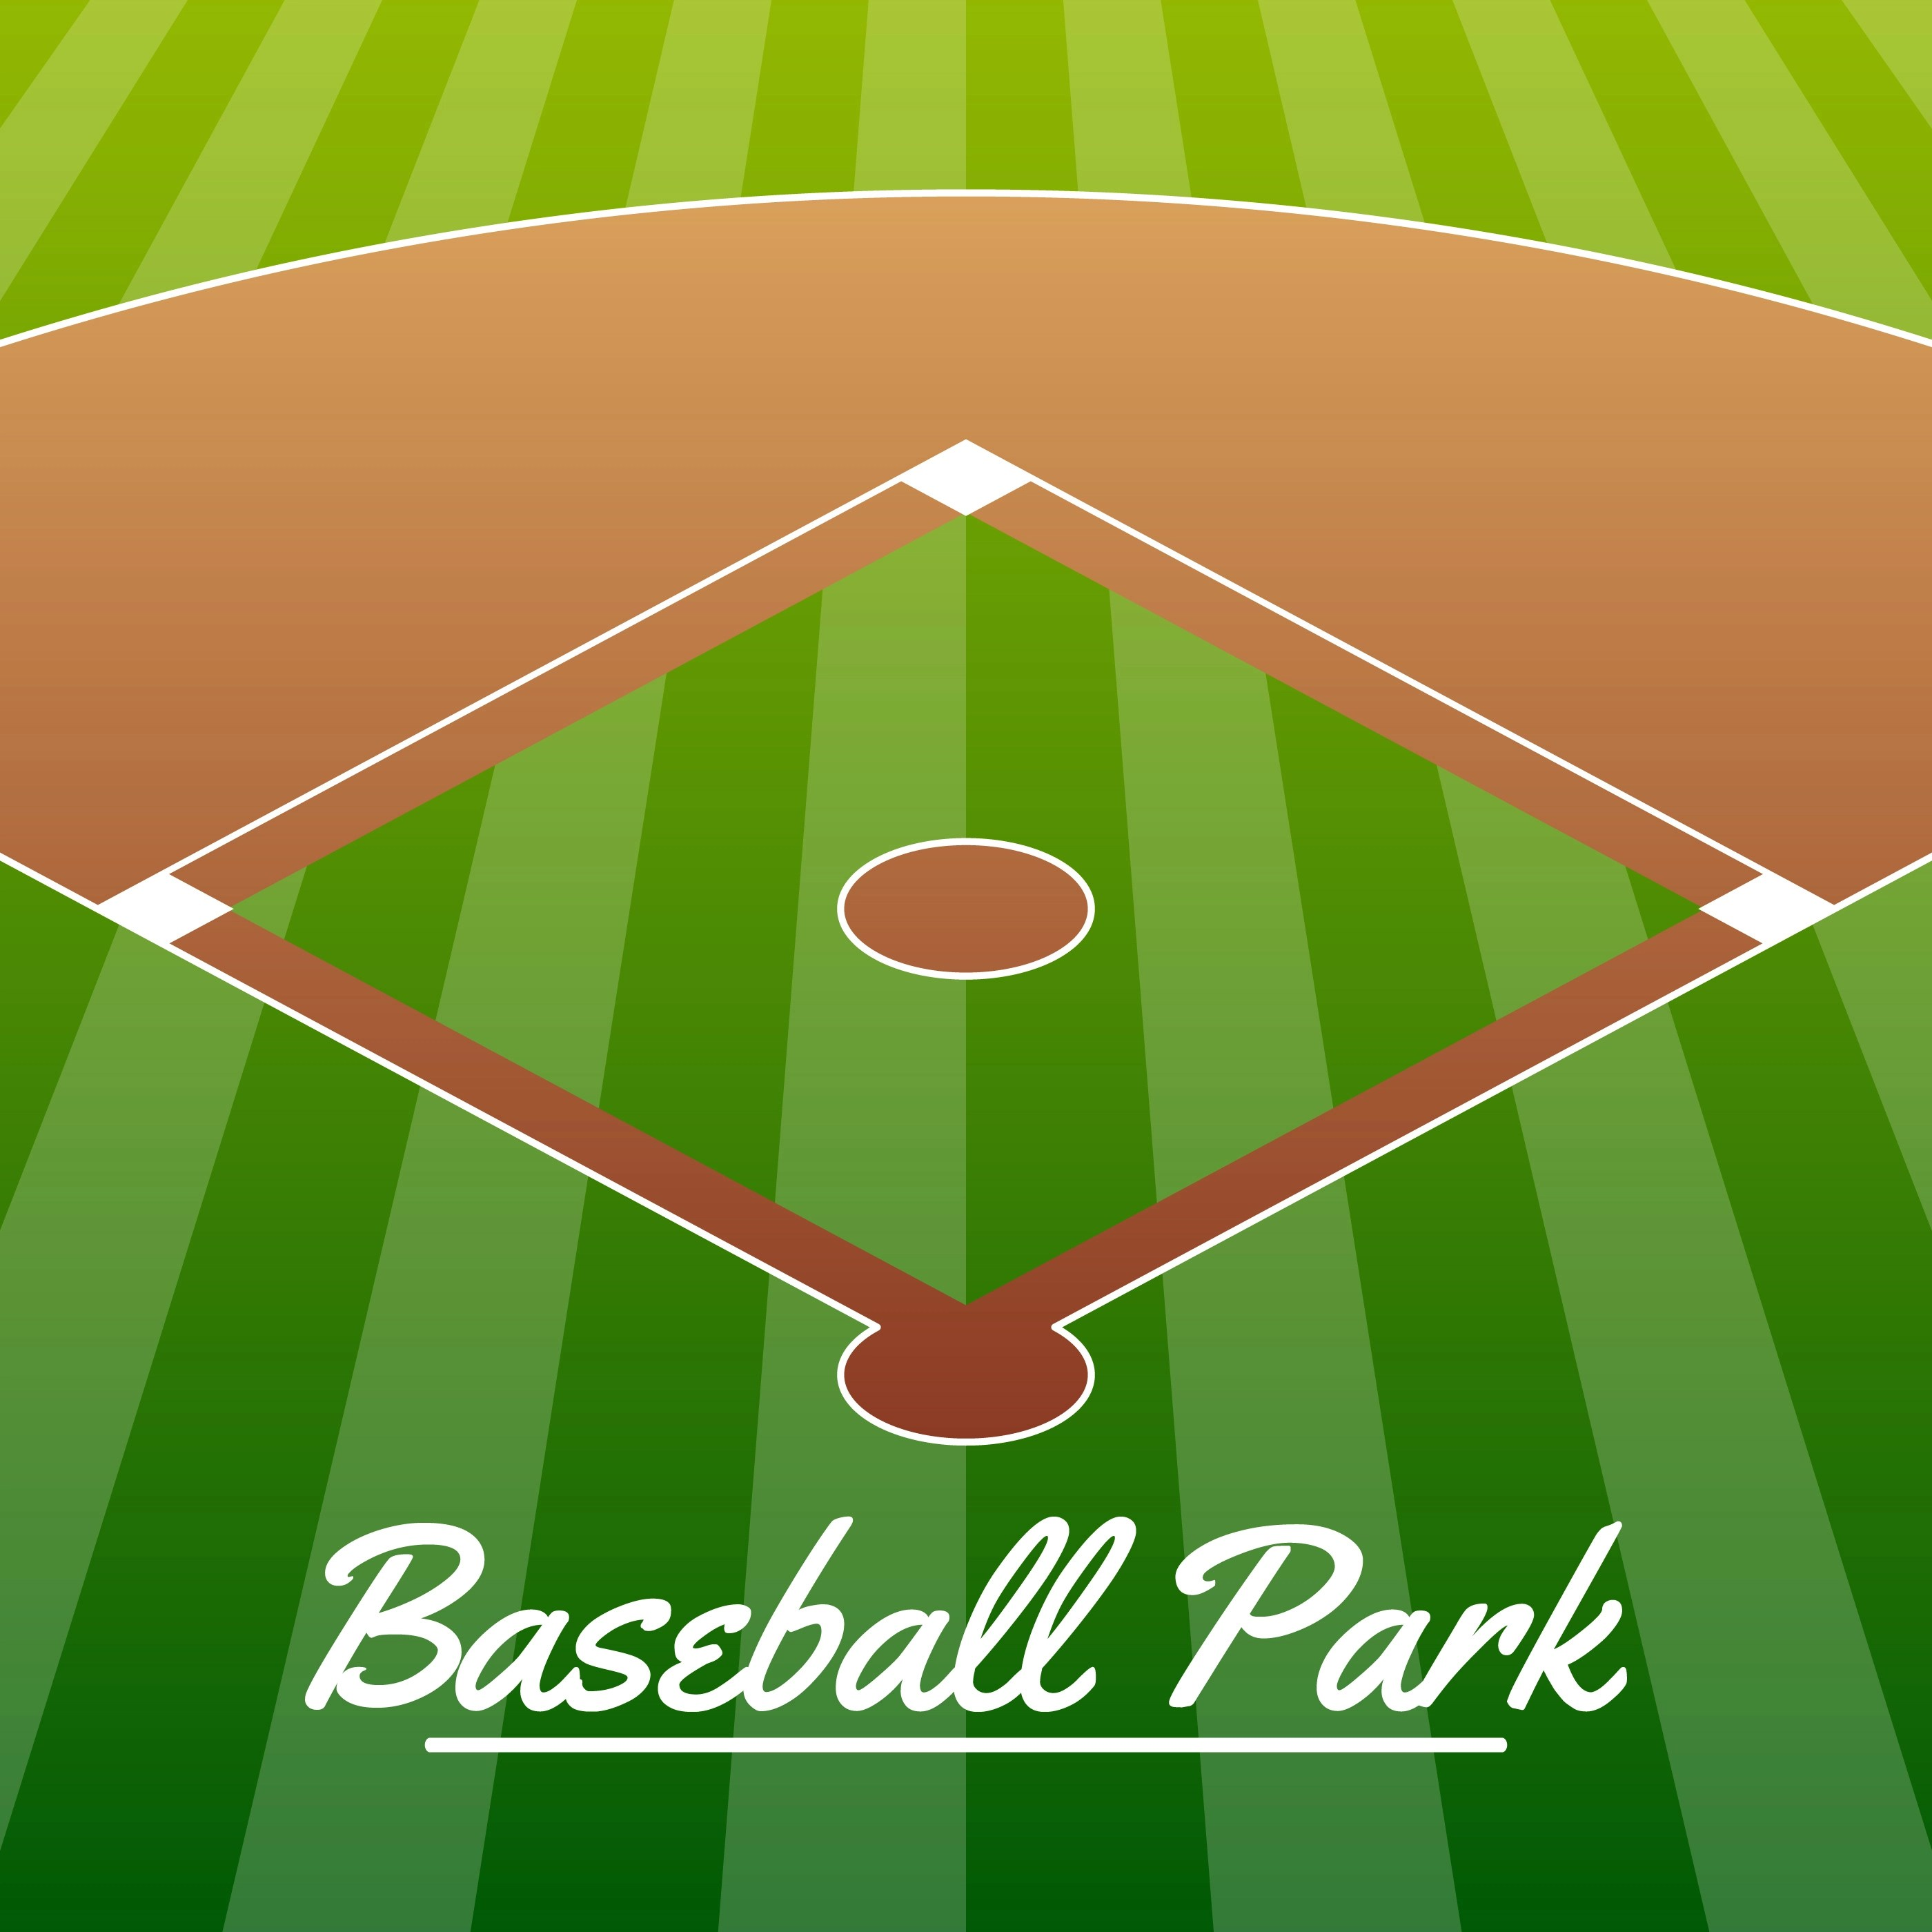 Baseball Stadium Free Vector Art